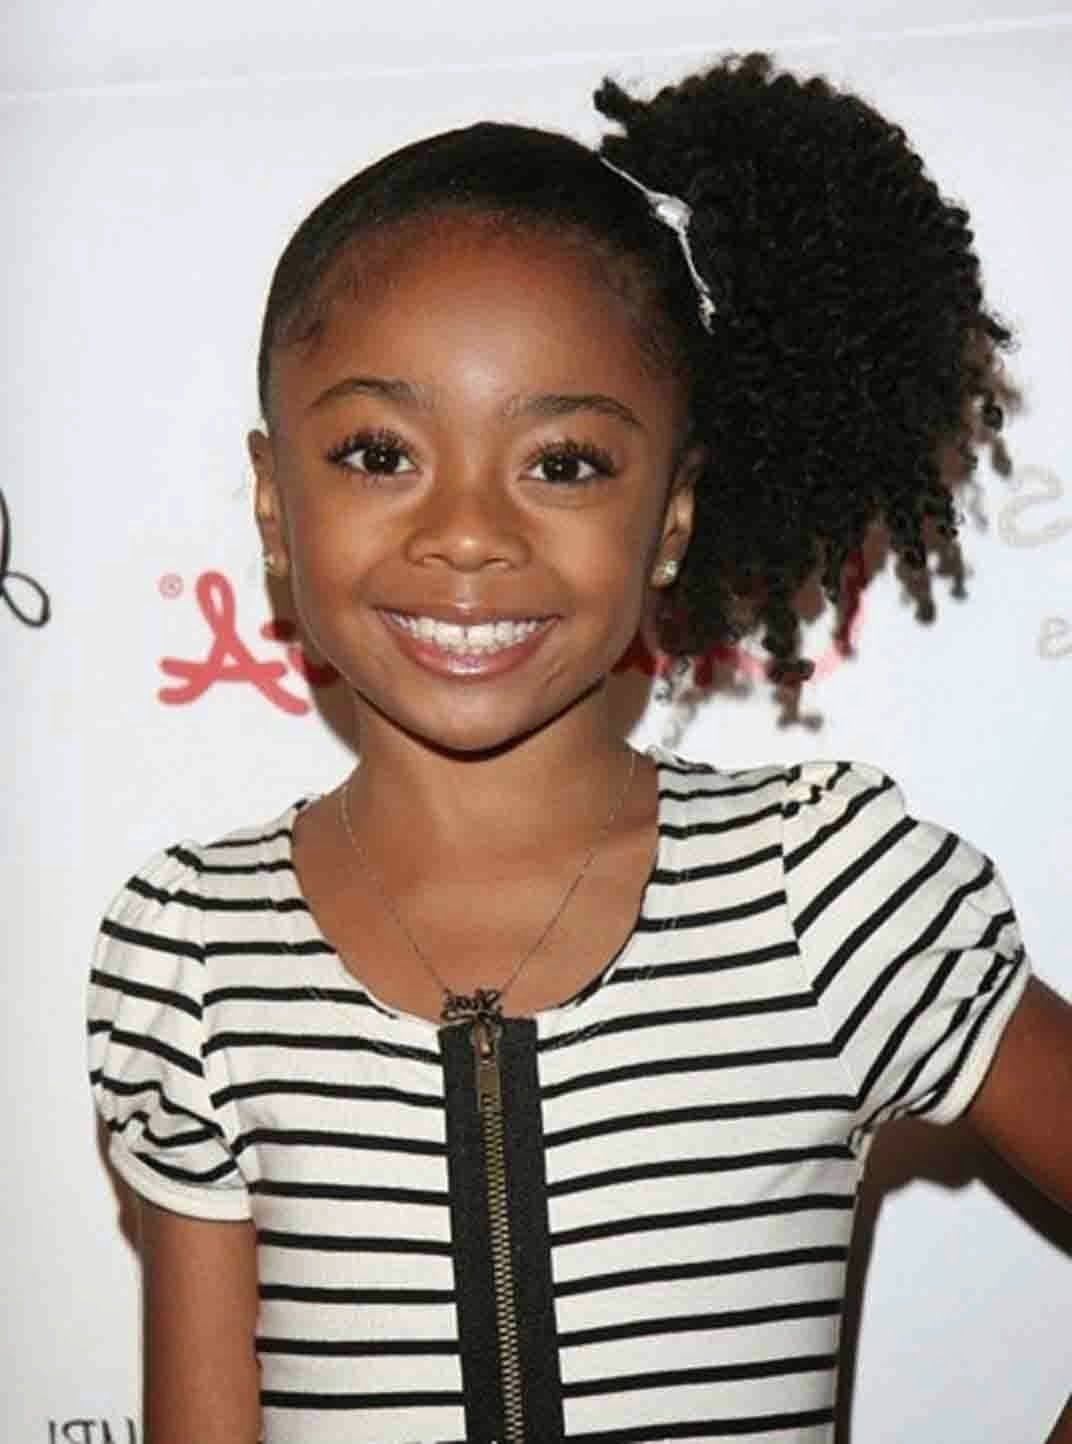 Ideal Braided Hairstyles For Little Black Girls 10 Inspiration